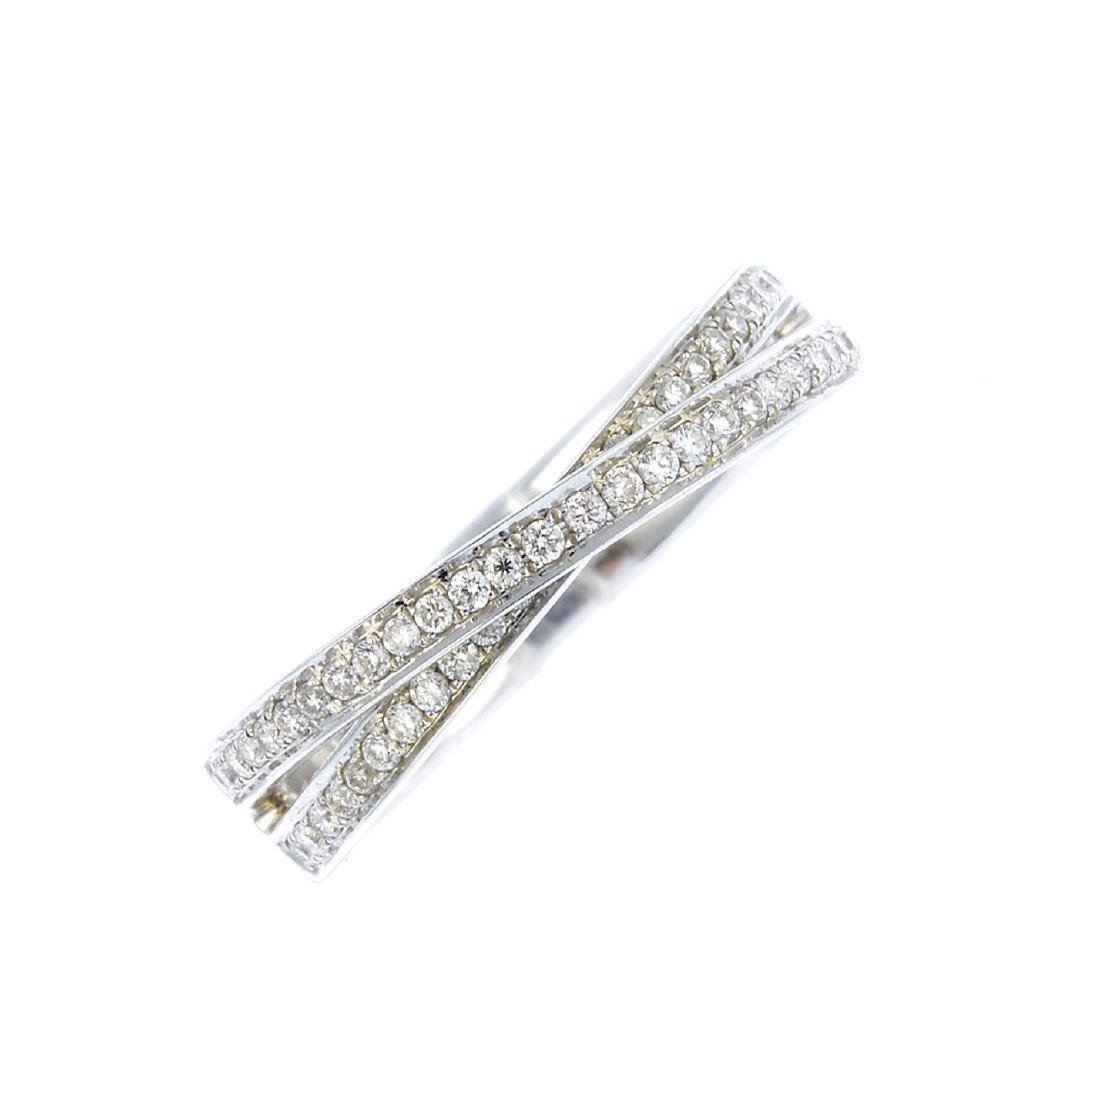 An 18ct gold diamond dress ring. Designed as two